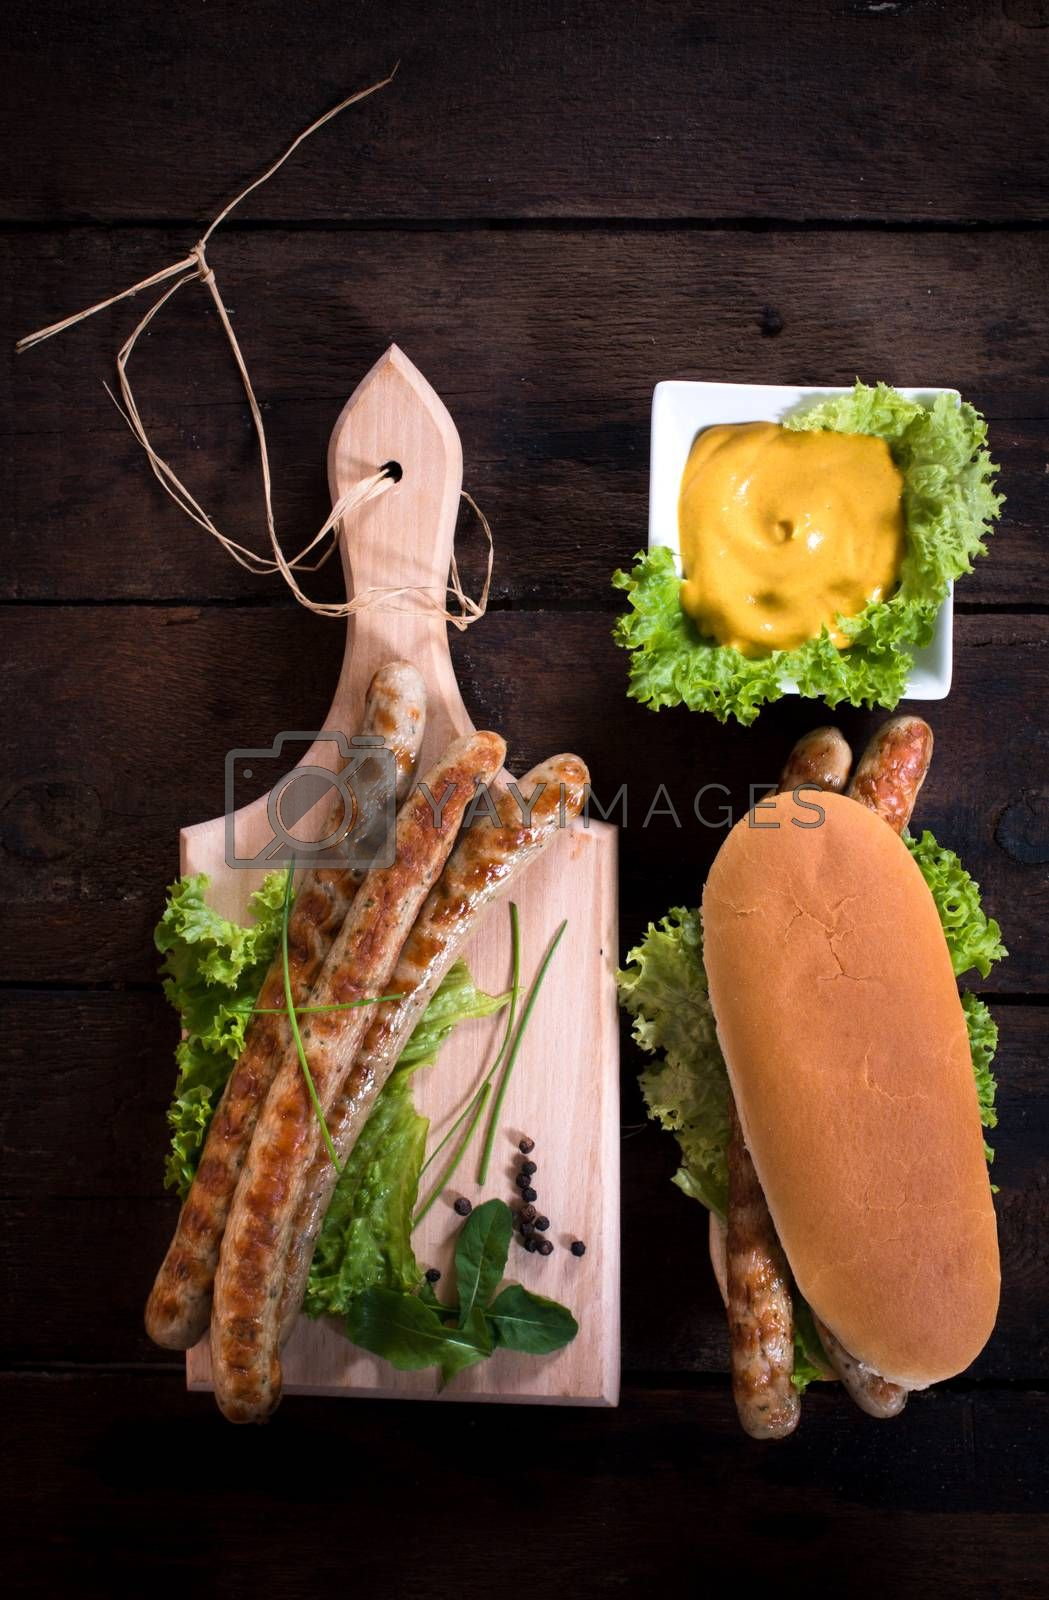 Grilled sausagesand mustard on wooden background from above